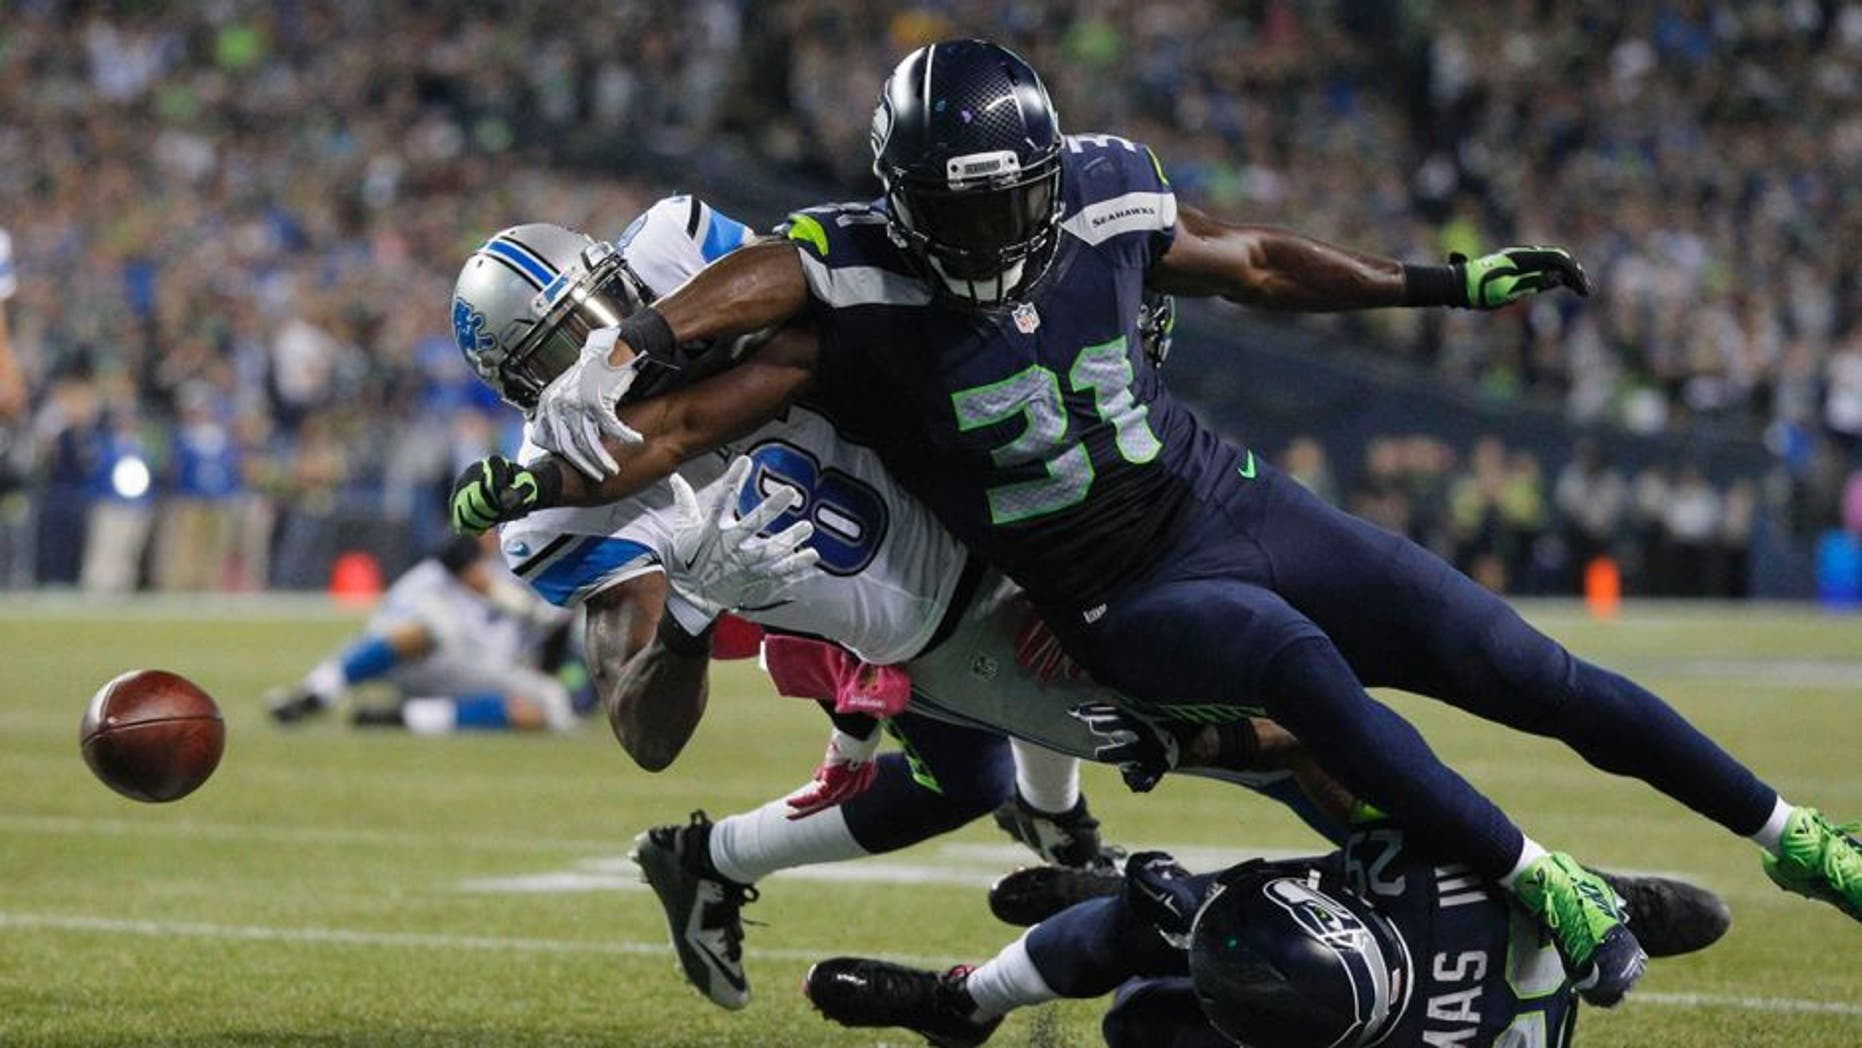 Oct 5, 2015; Seattle, WA, USA; Seattle Seahawks strong safety Kam Chancellor (31) forces a fumble by Detroit Lions wide receiver Calvin Johnson (81) during the fourth quarter at CenturyLink Field. Mandatory Credit: Joe Nicholson-USA TODAY Sports